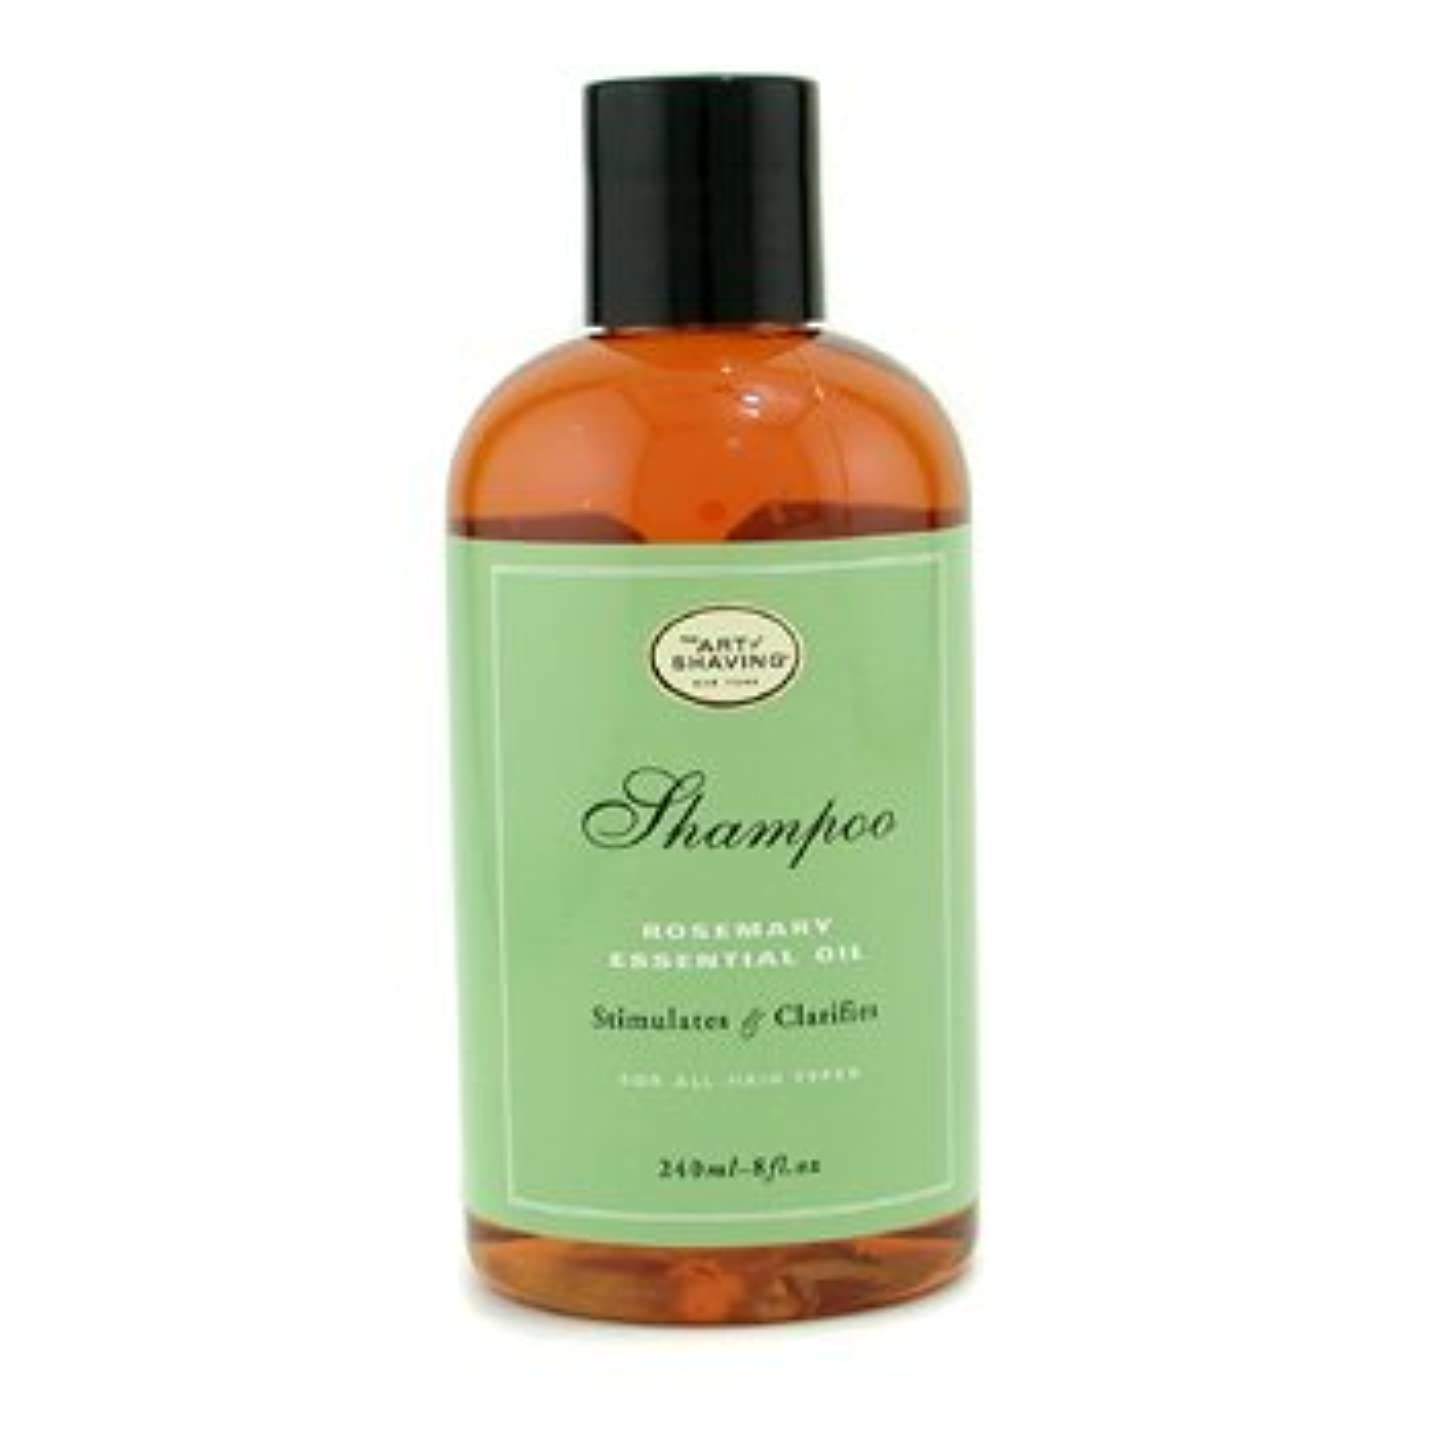 相関するりんご口[The Art Of Shaving] Shampoo - Rosemary Essential Oil ( For All Hair Types ) 240ml/8oz